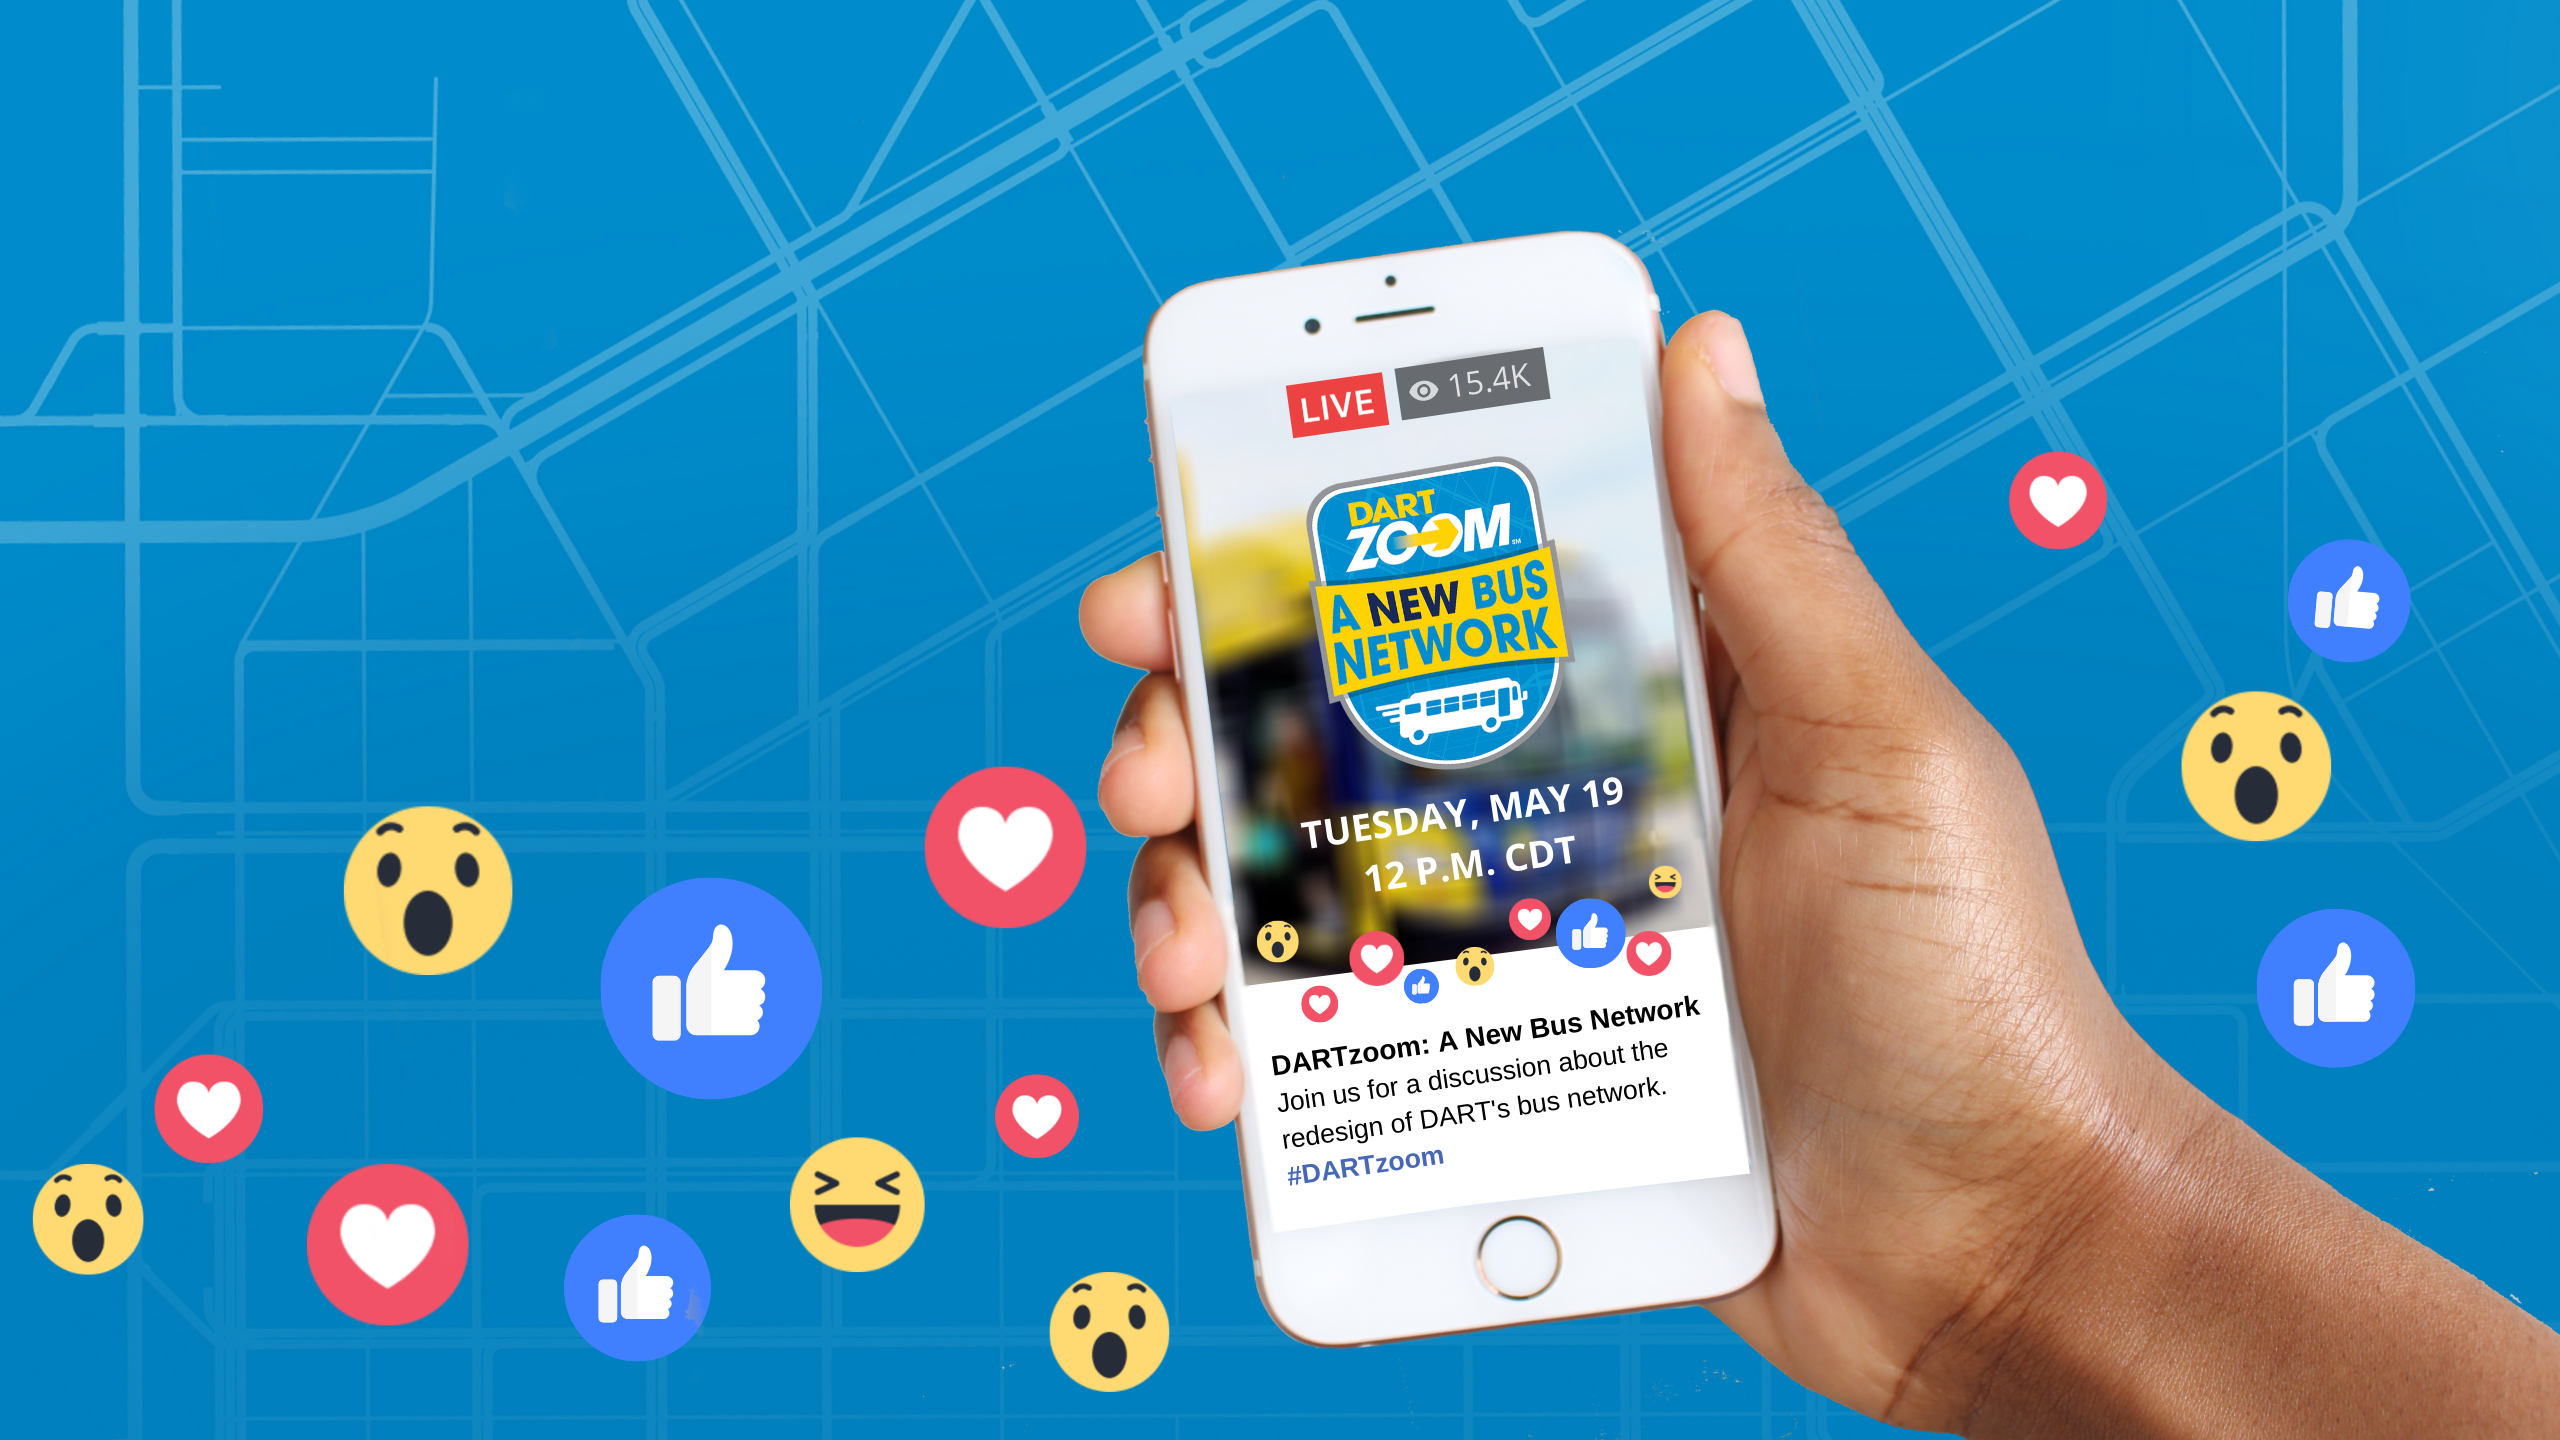 Join Us on Facebook Live to Discuss DARTzoom: A New Bus Network